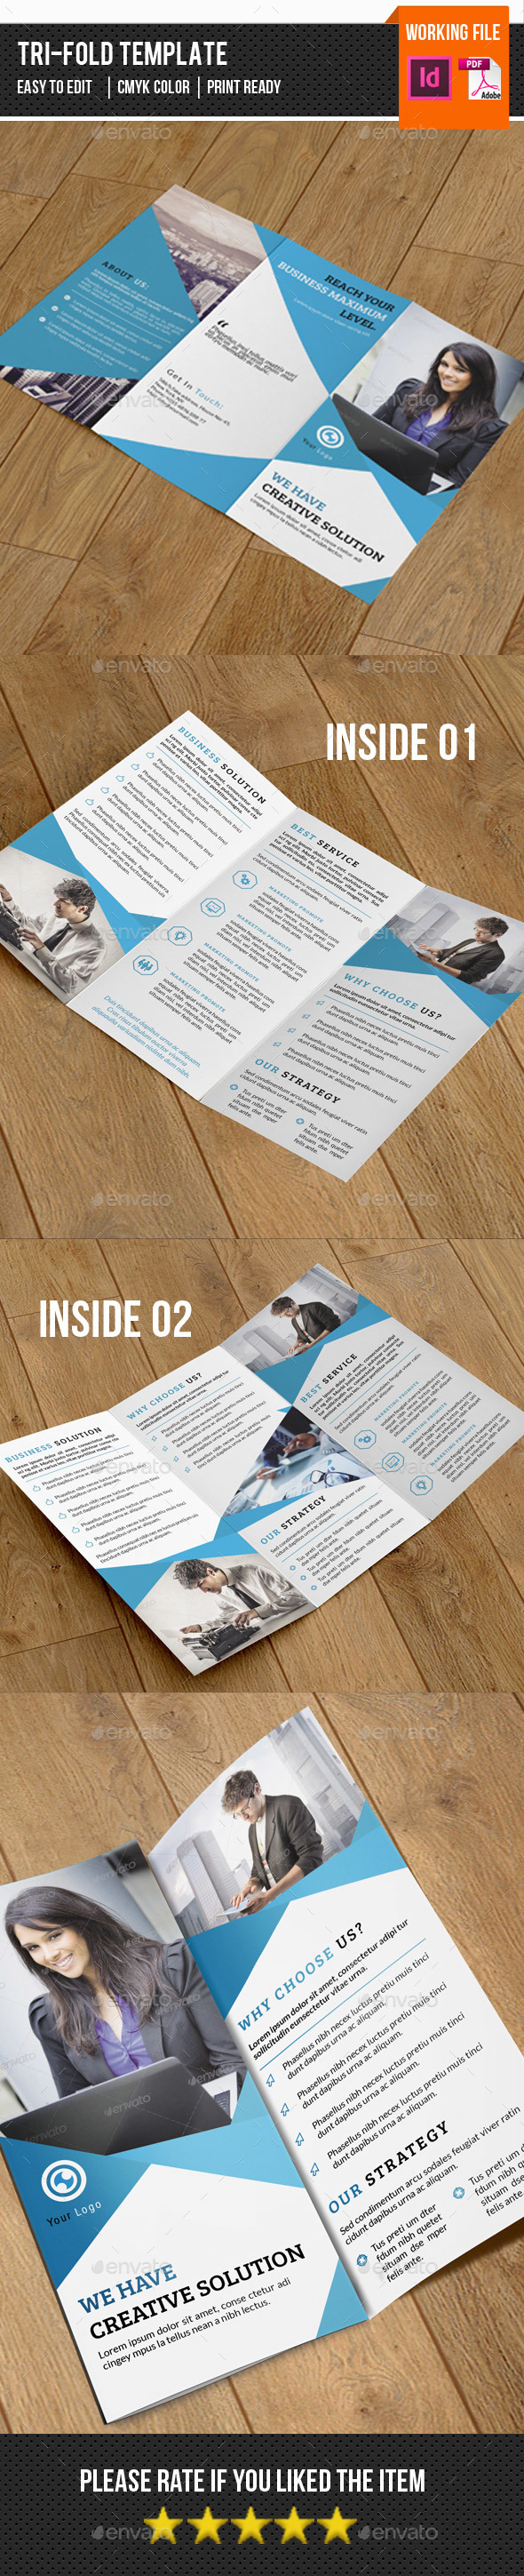 Corporate Trifold Brochure-V257 - Corporate Brochures